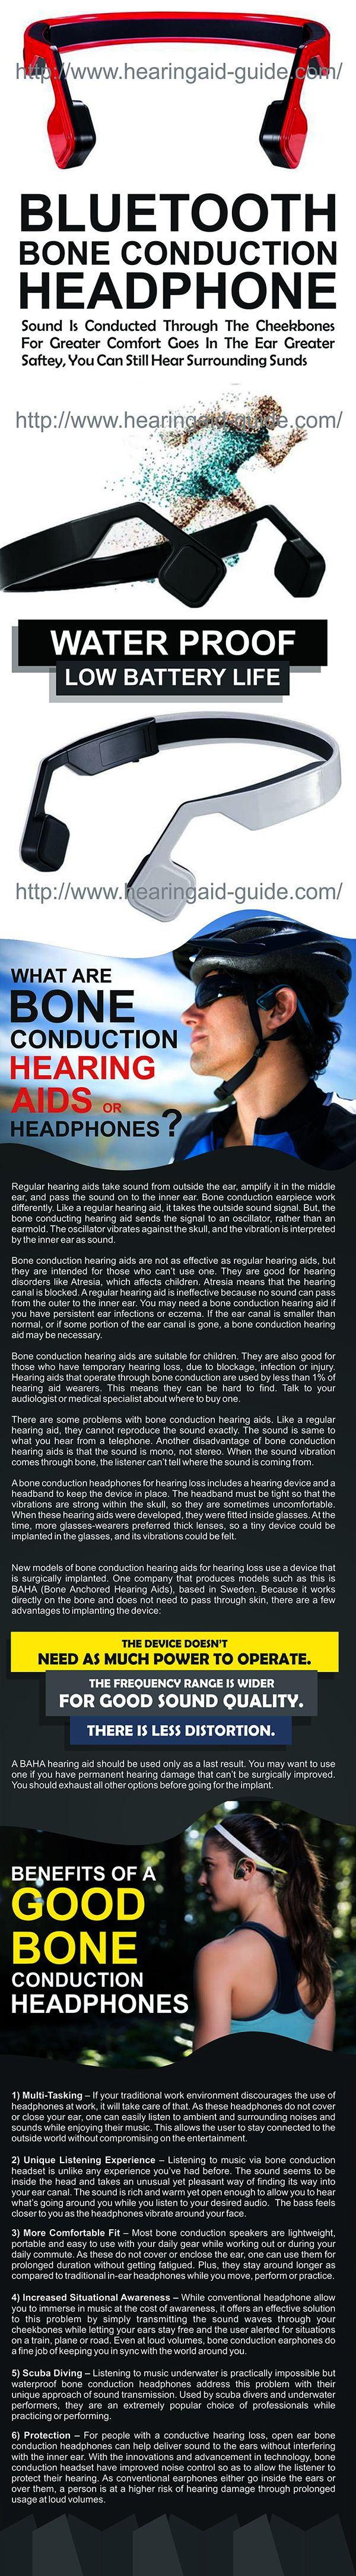 Best Bone Conduction Headphones Ever.....:) XOXO Best for those who can't wear Hearing aids due to their ear problems & it also future of headphones because it also used by others like for listening music which gives extremely joy to listen a soft or rocking song & for other activities too...